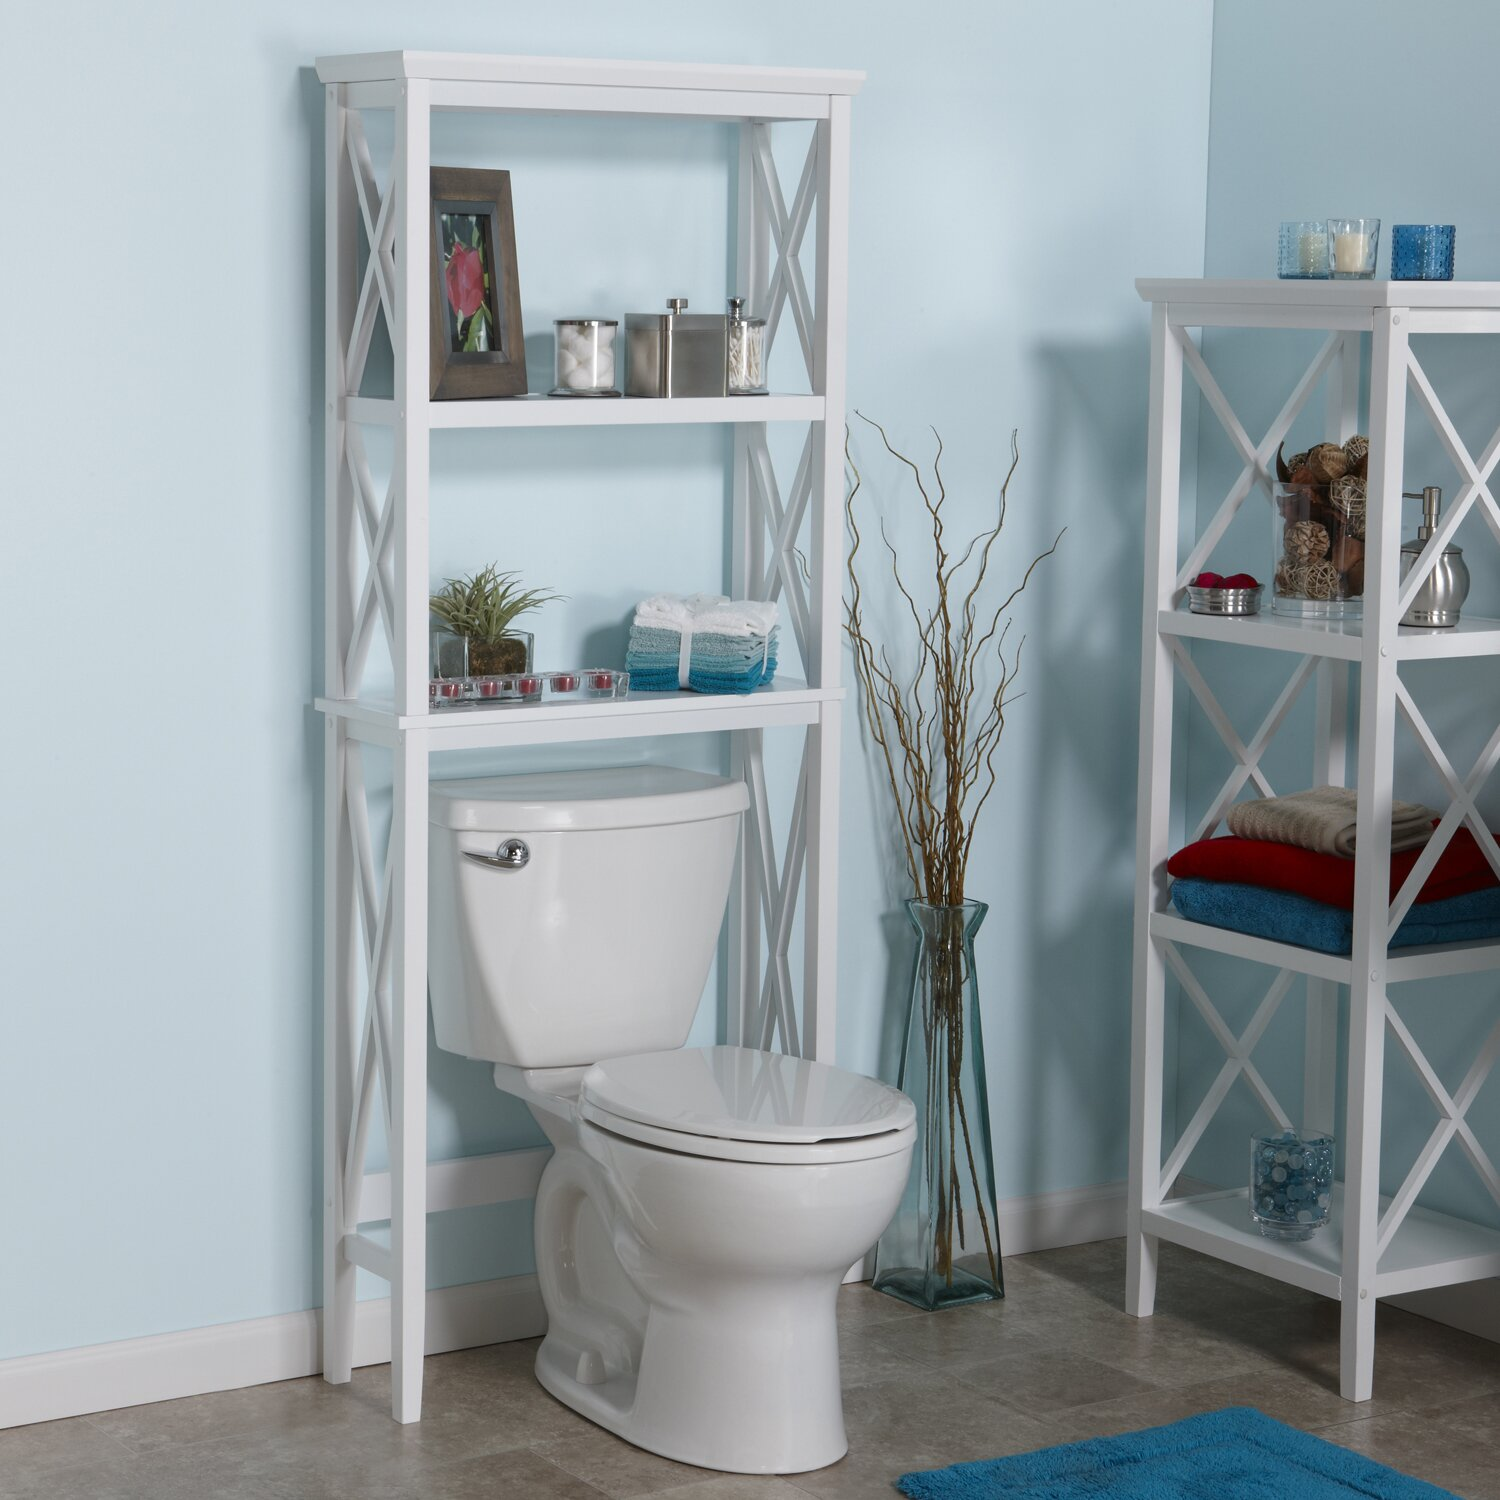 riverridge home products x frame 26 w x 64 h over the toilet storage reviews wayfair. Black Bedroom Furniture Sets. Home Design Ideas